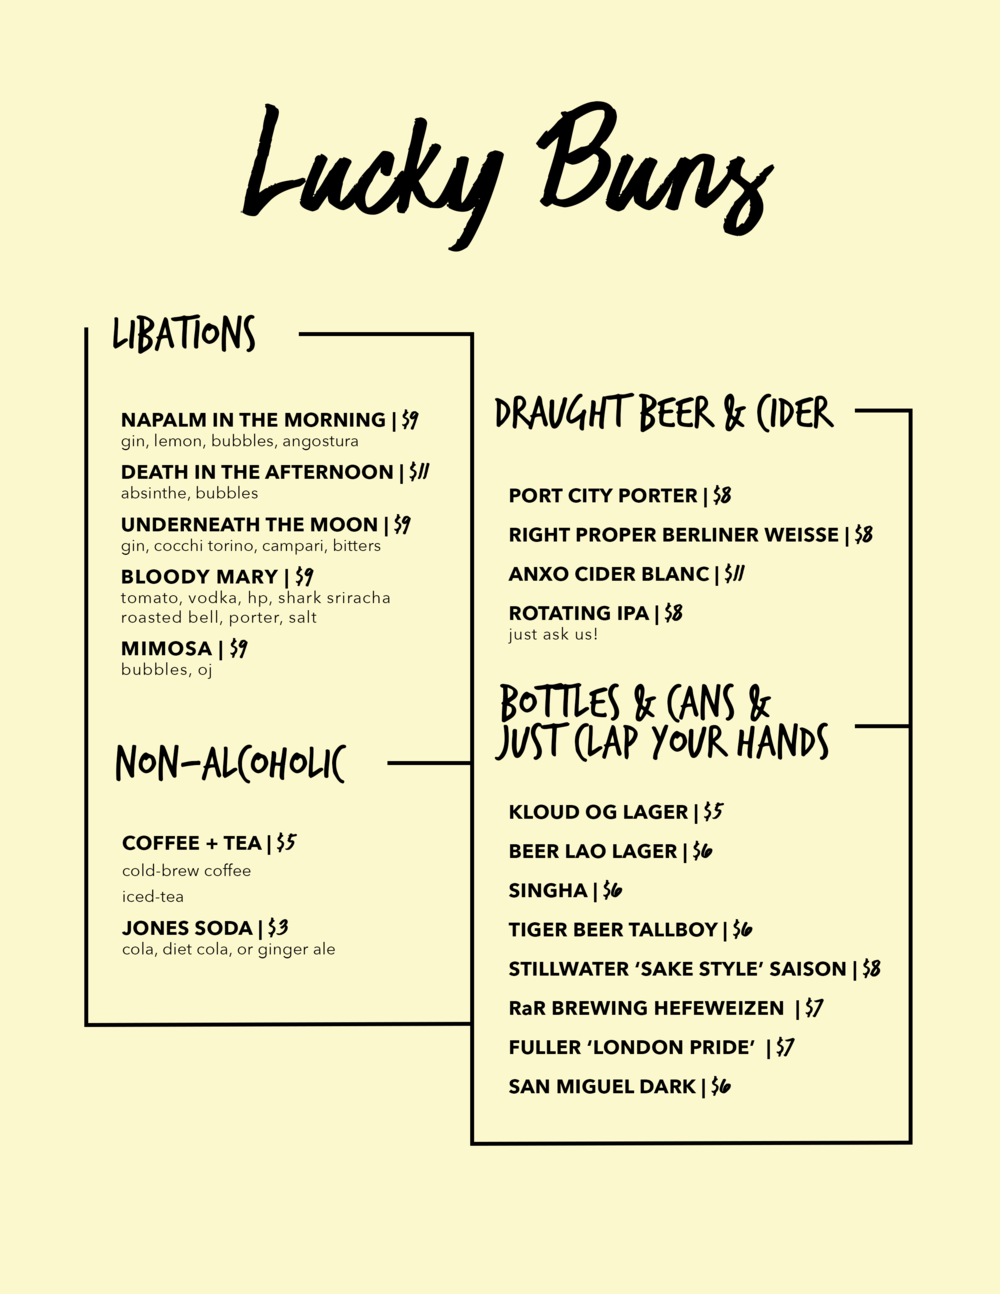 luckybuns_brunchdrinkmenu-website.png